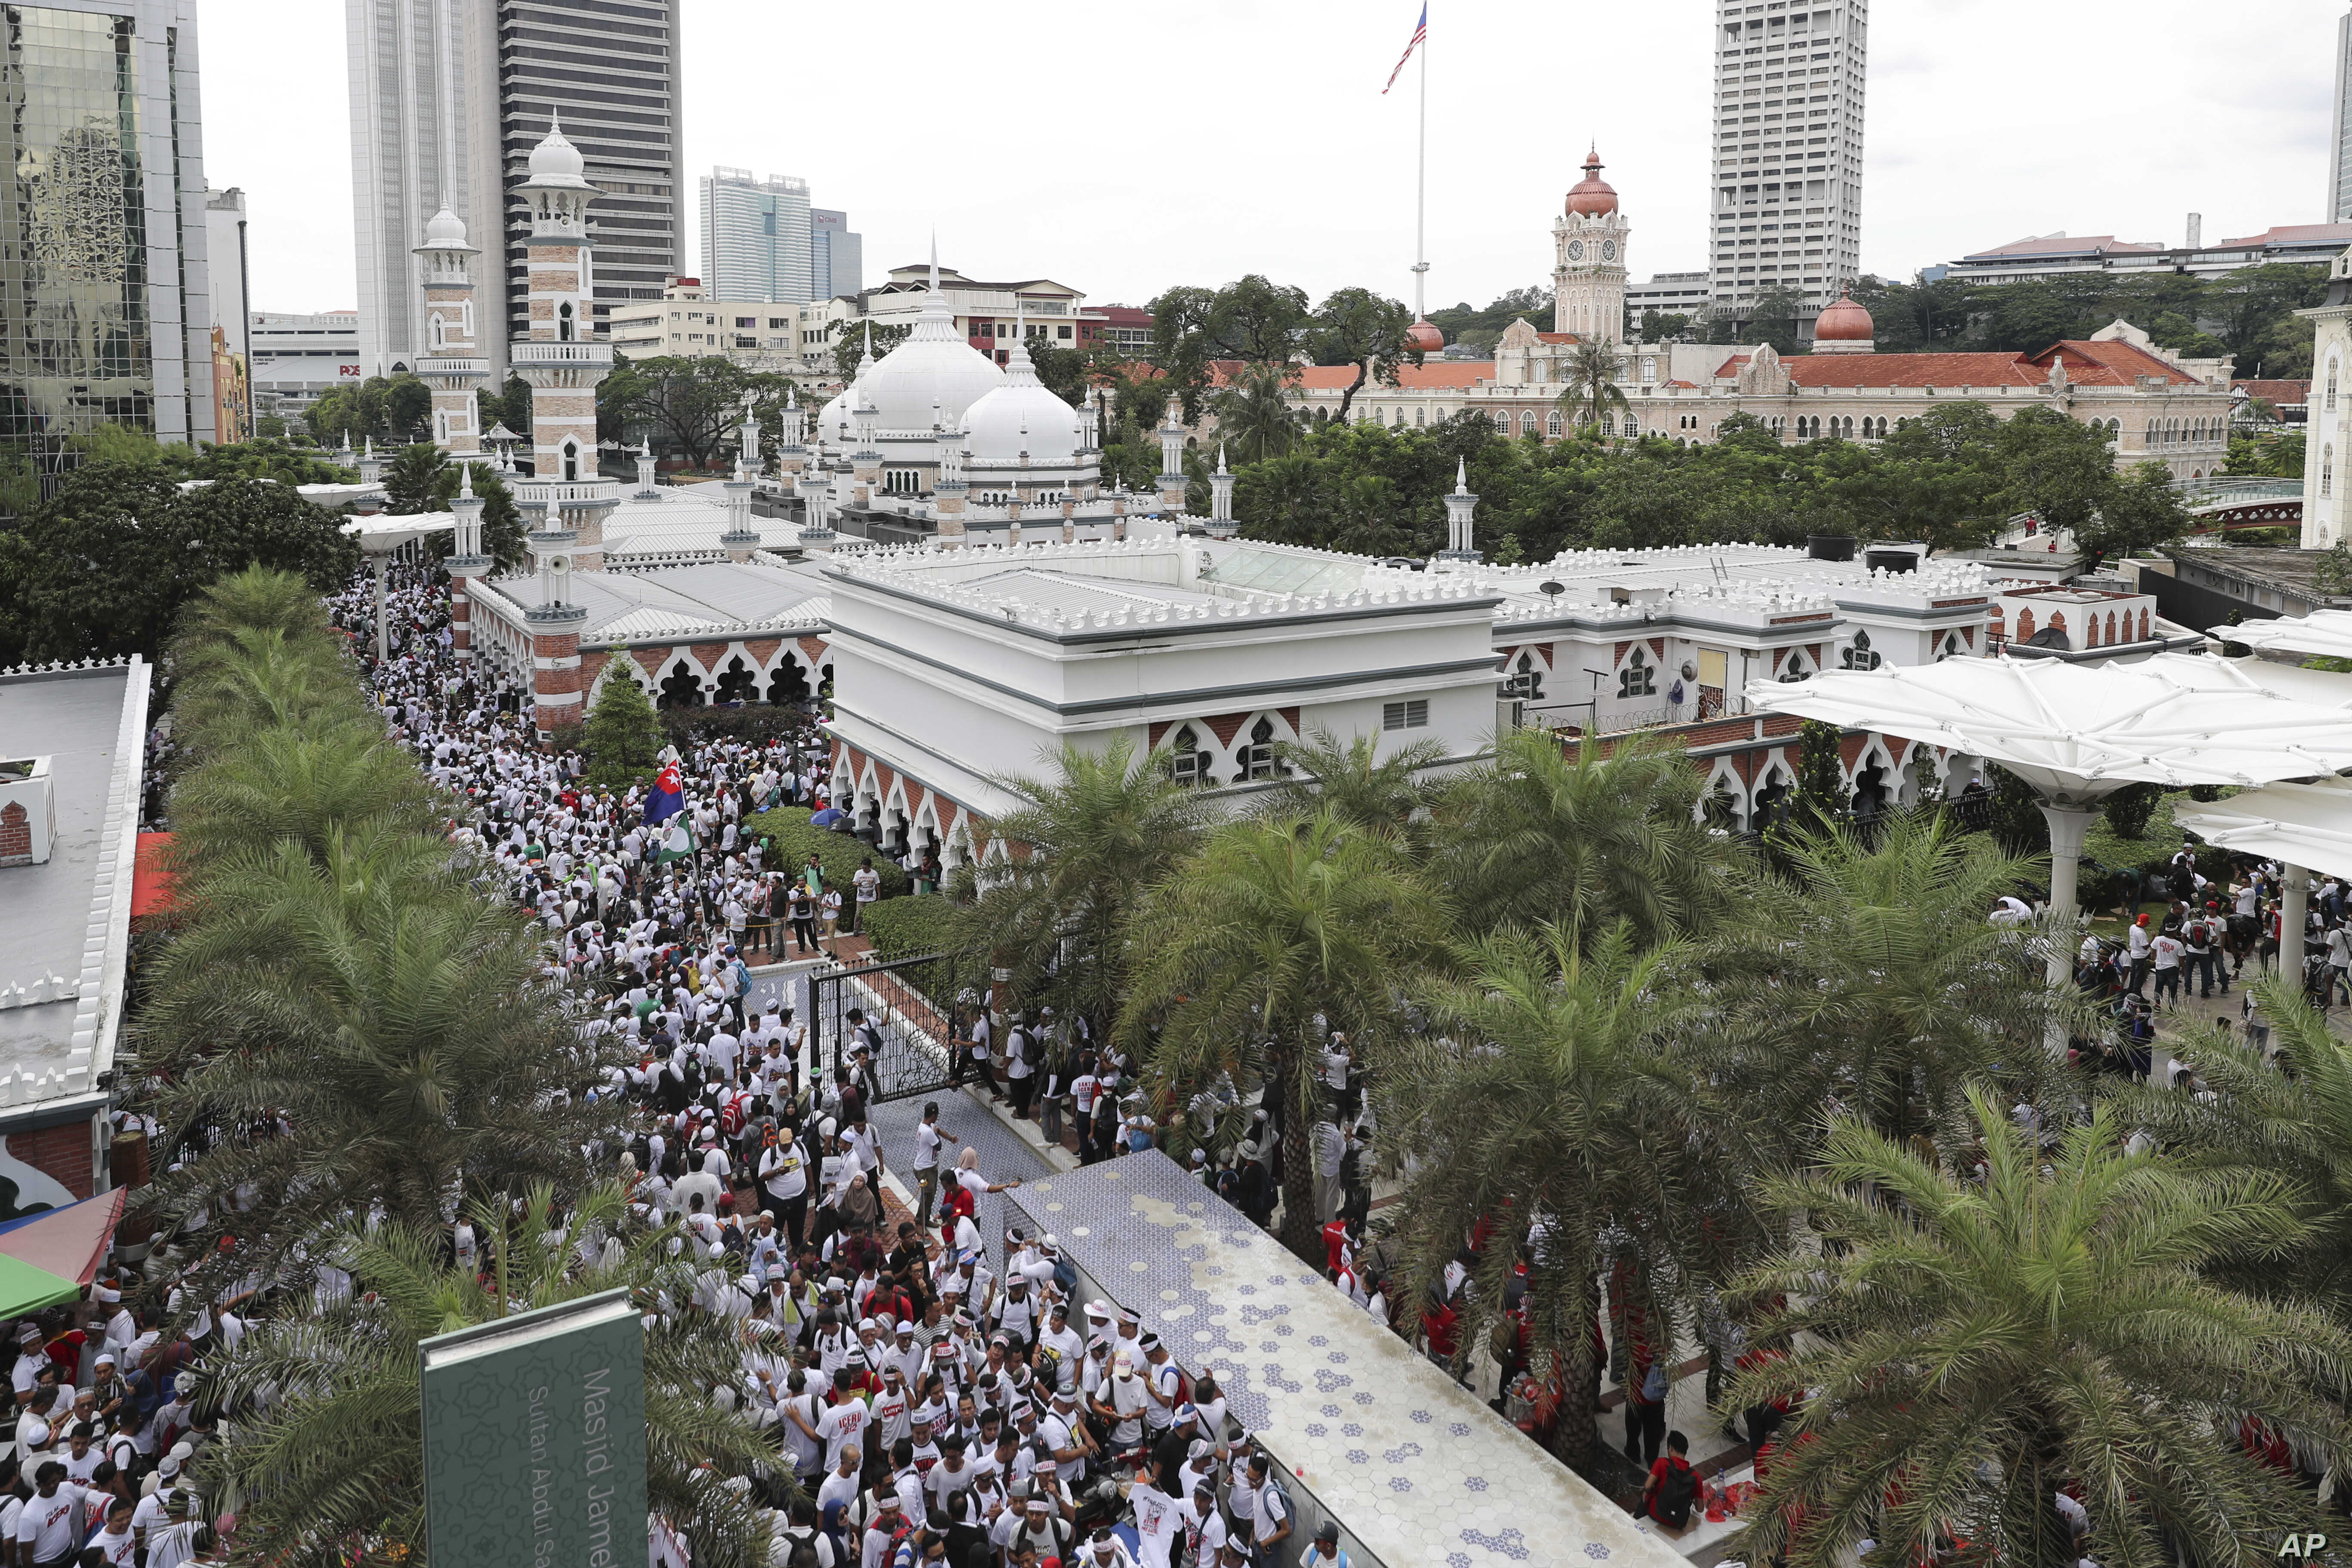 Protesters gather for a rally near a mosque to celebrate the government's decision not to ratify a U.N. anti-discrimination convention, in Kuala Lumpur, Malaysia, Dec. 8, 2018. Thousands of Malaysian Muslims are rallying in Kuala Lumpur against any a...